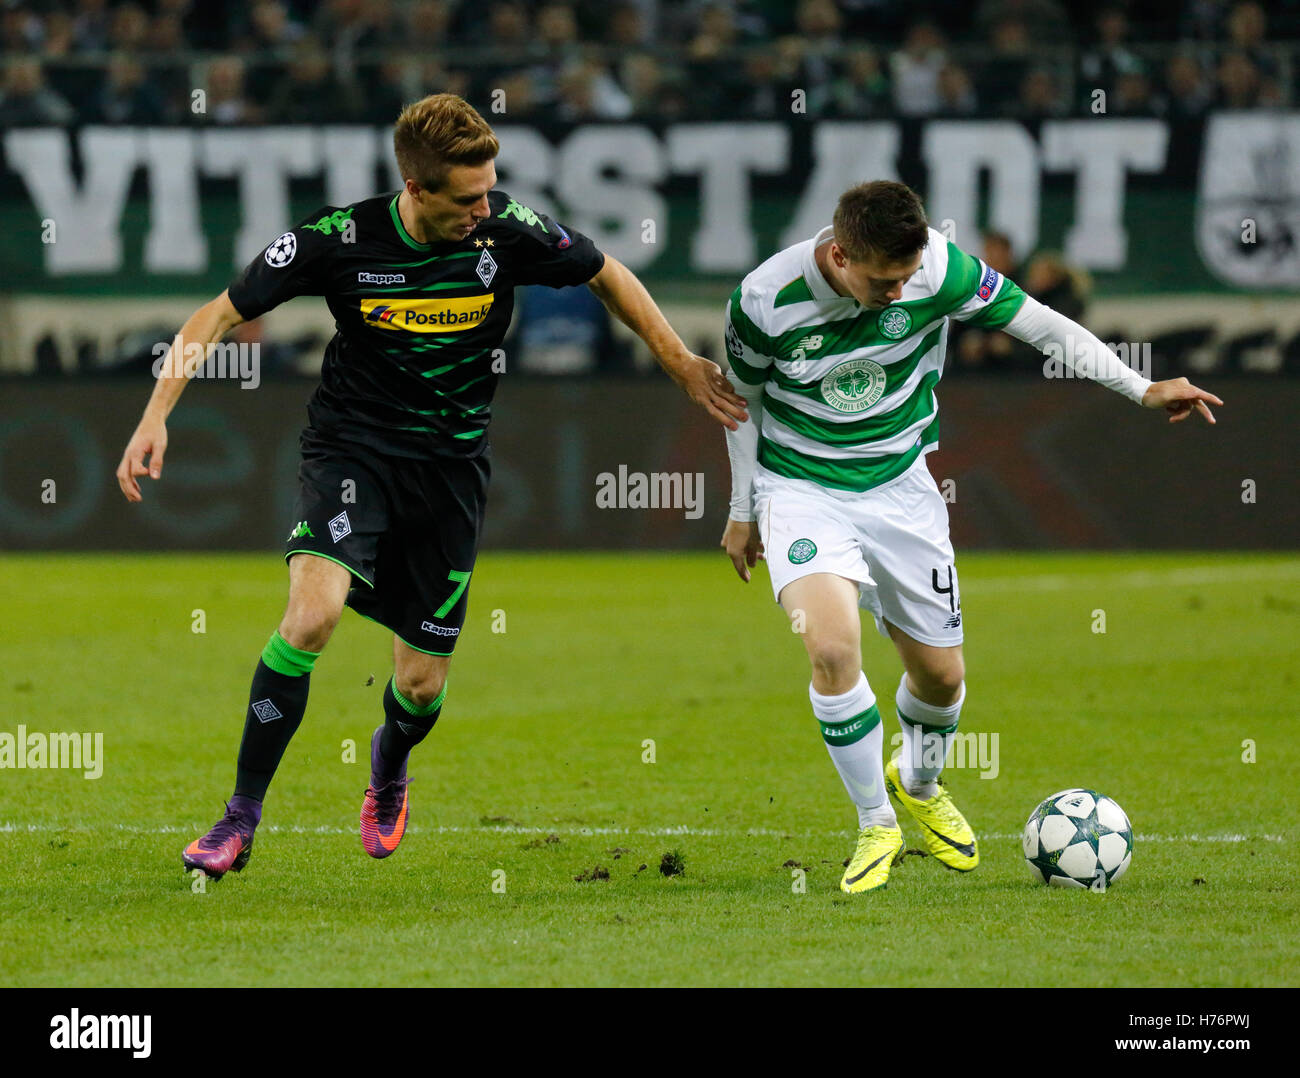 sports, football, UEFA Champions League, 2016/2017, Group Stage, Group C, Matchday 4, Borussia Moenchengladbach - Stock Image